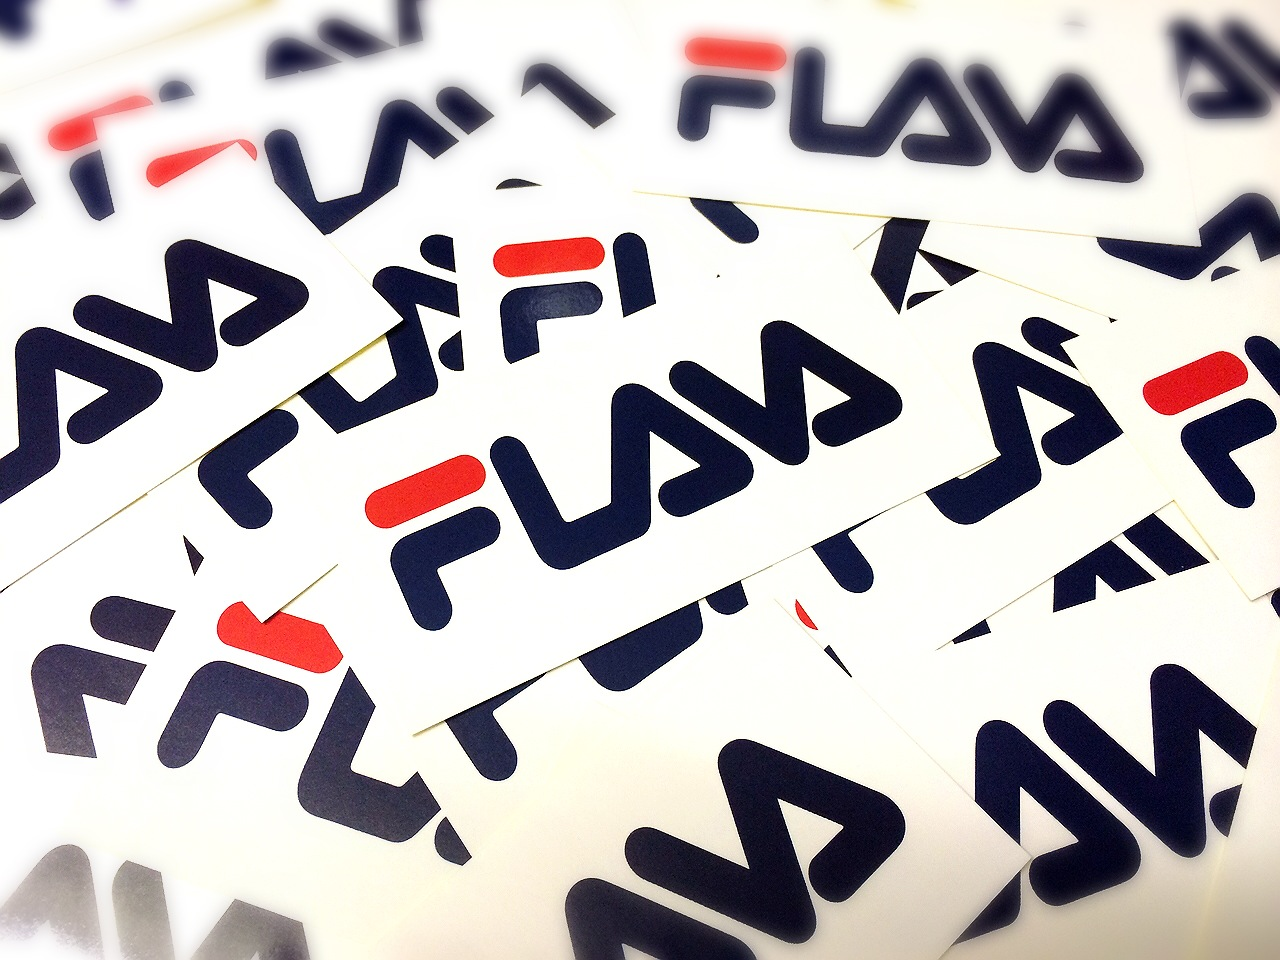 flava-fila_sticker.jpg